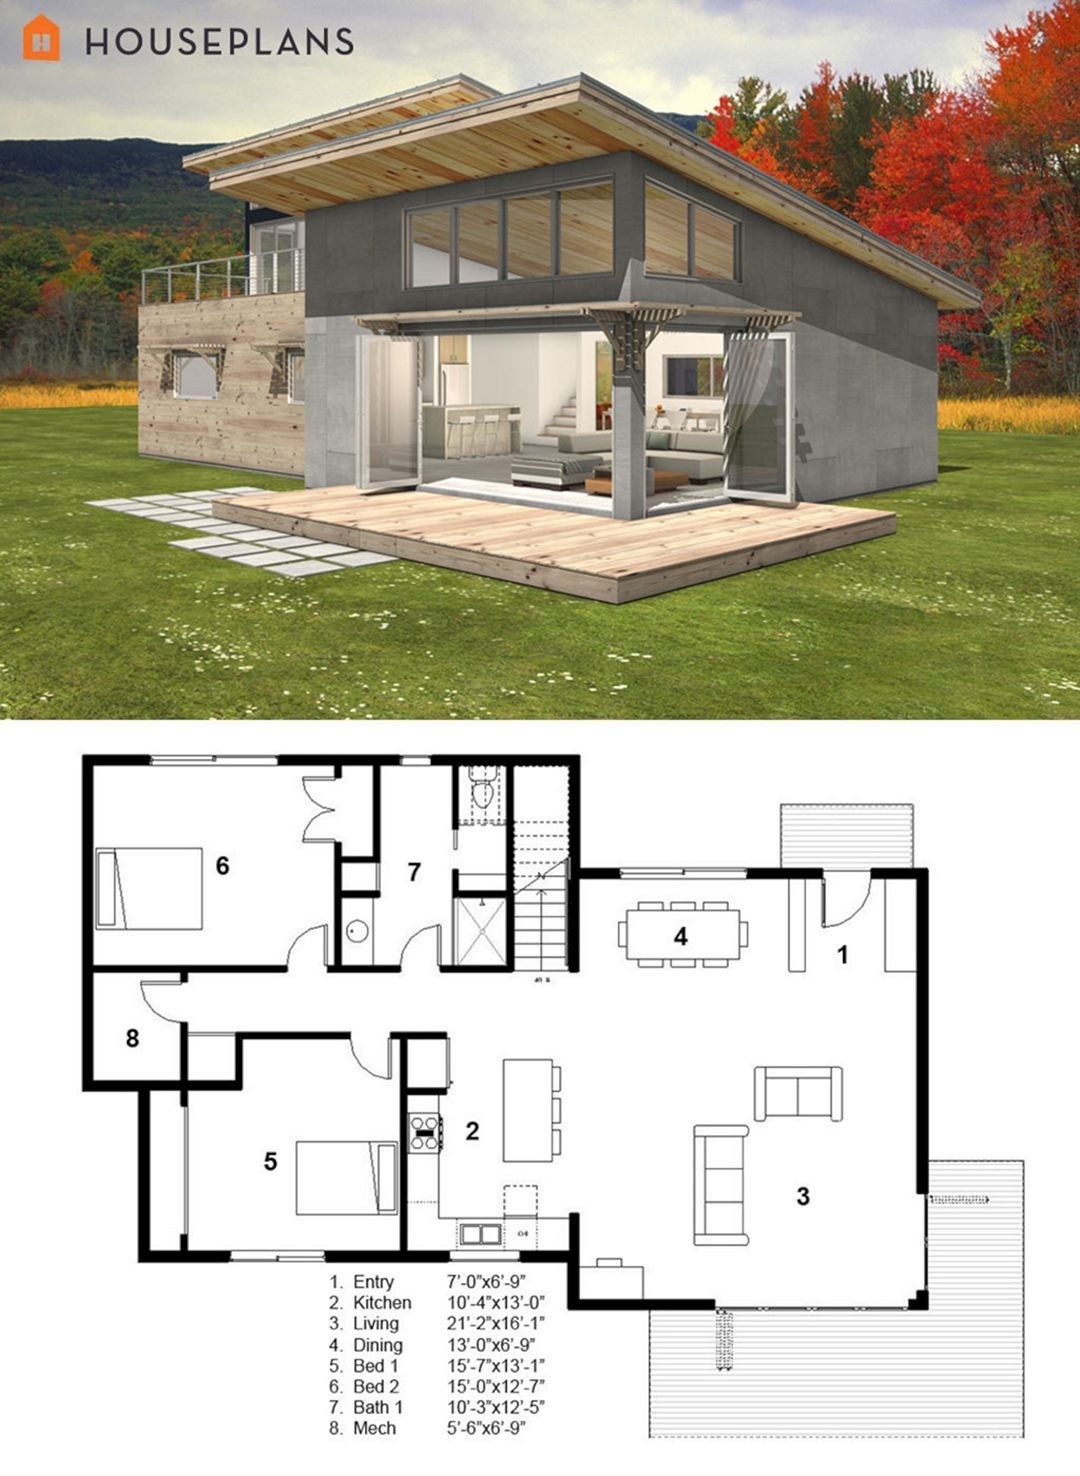 House Plans for Small Homes New the Best Modern Tiny House Design Small Homes Inspirations